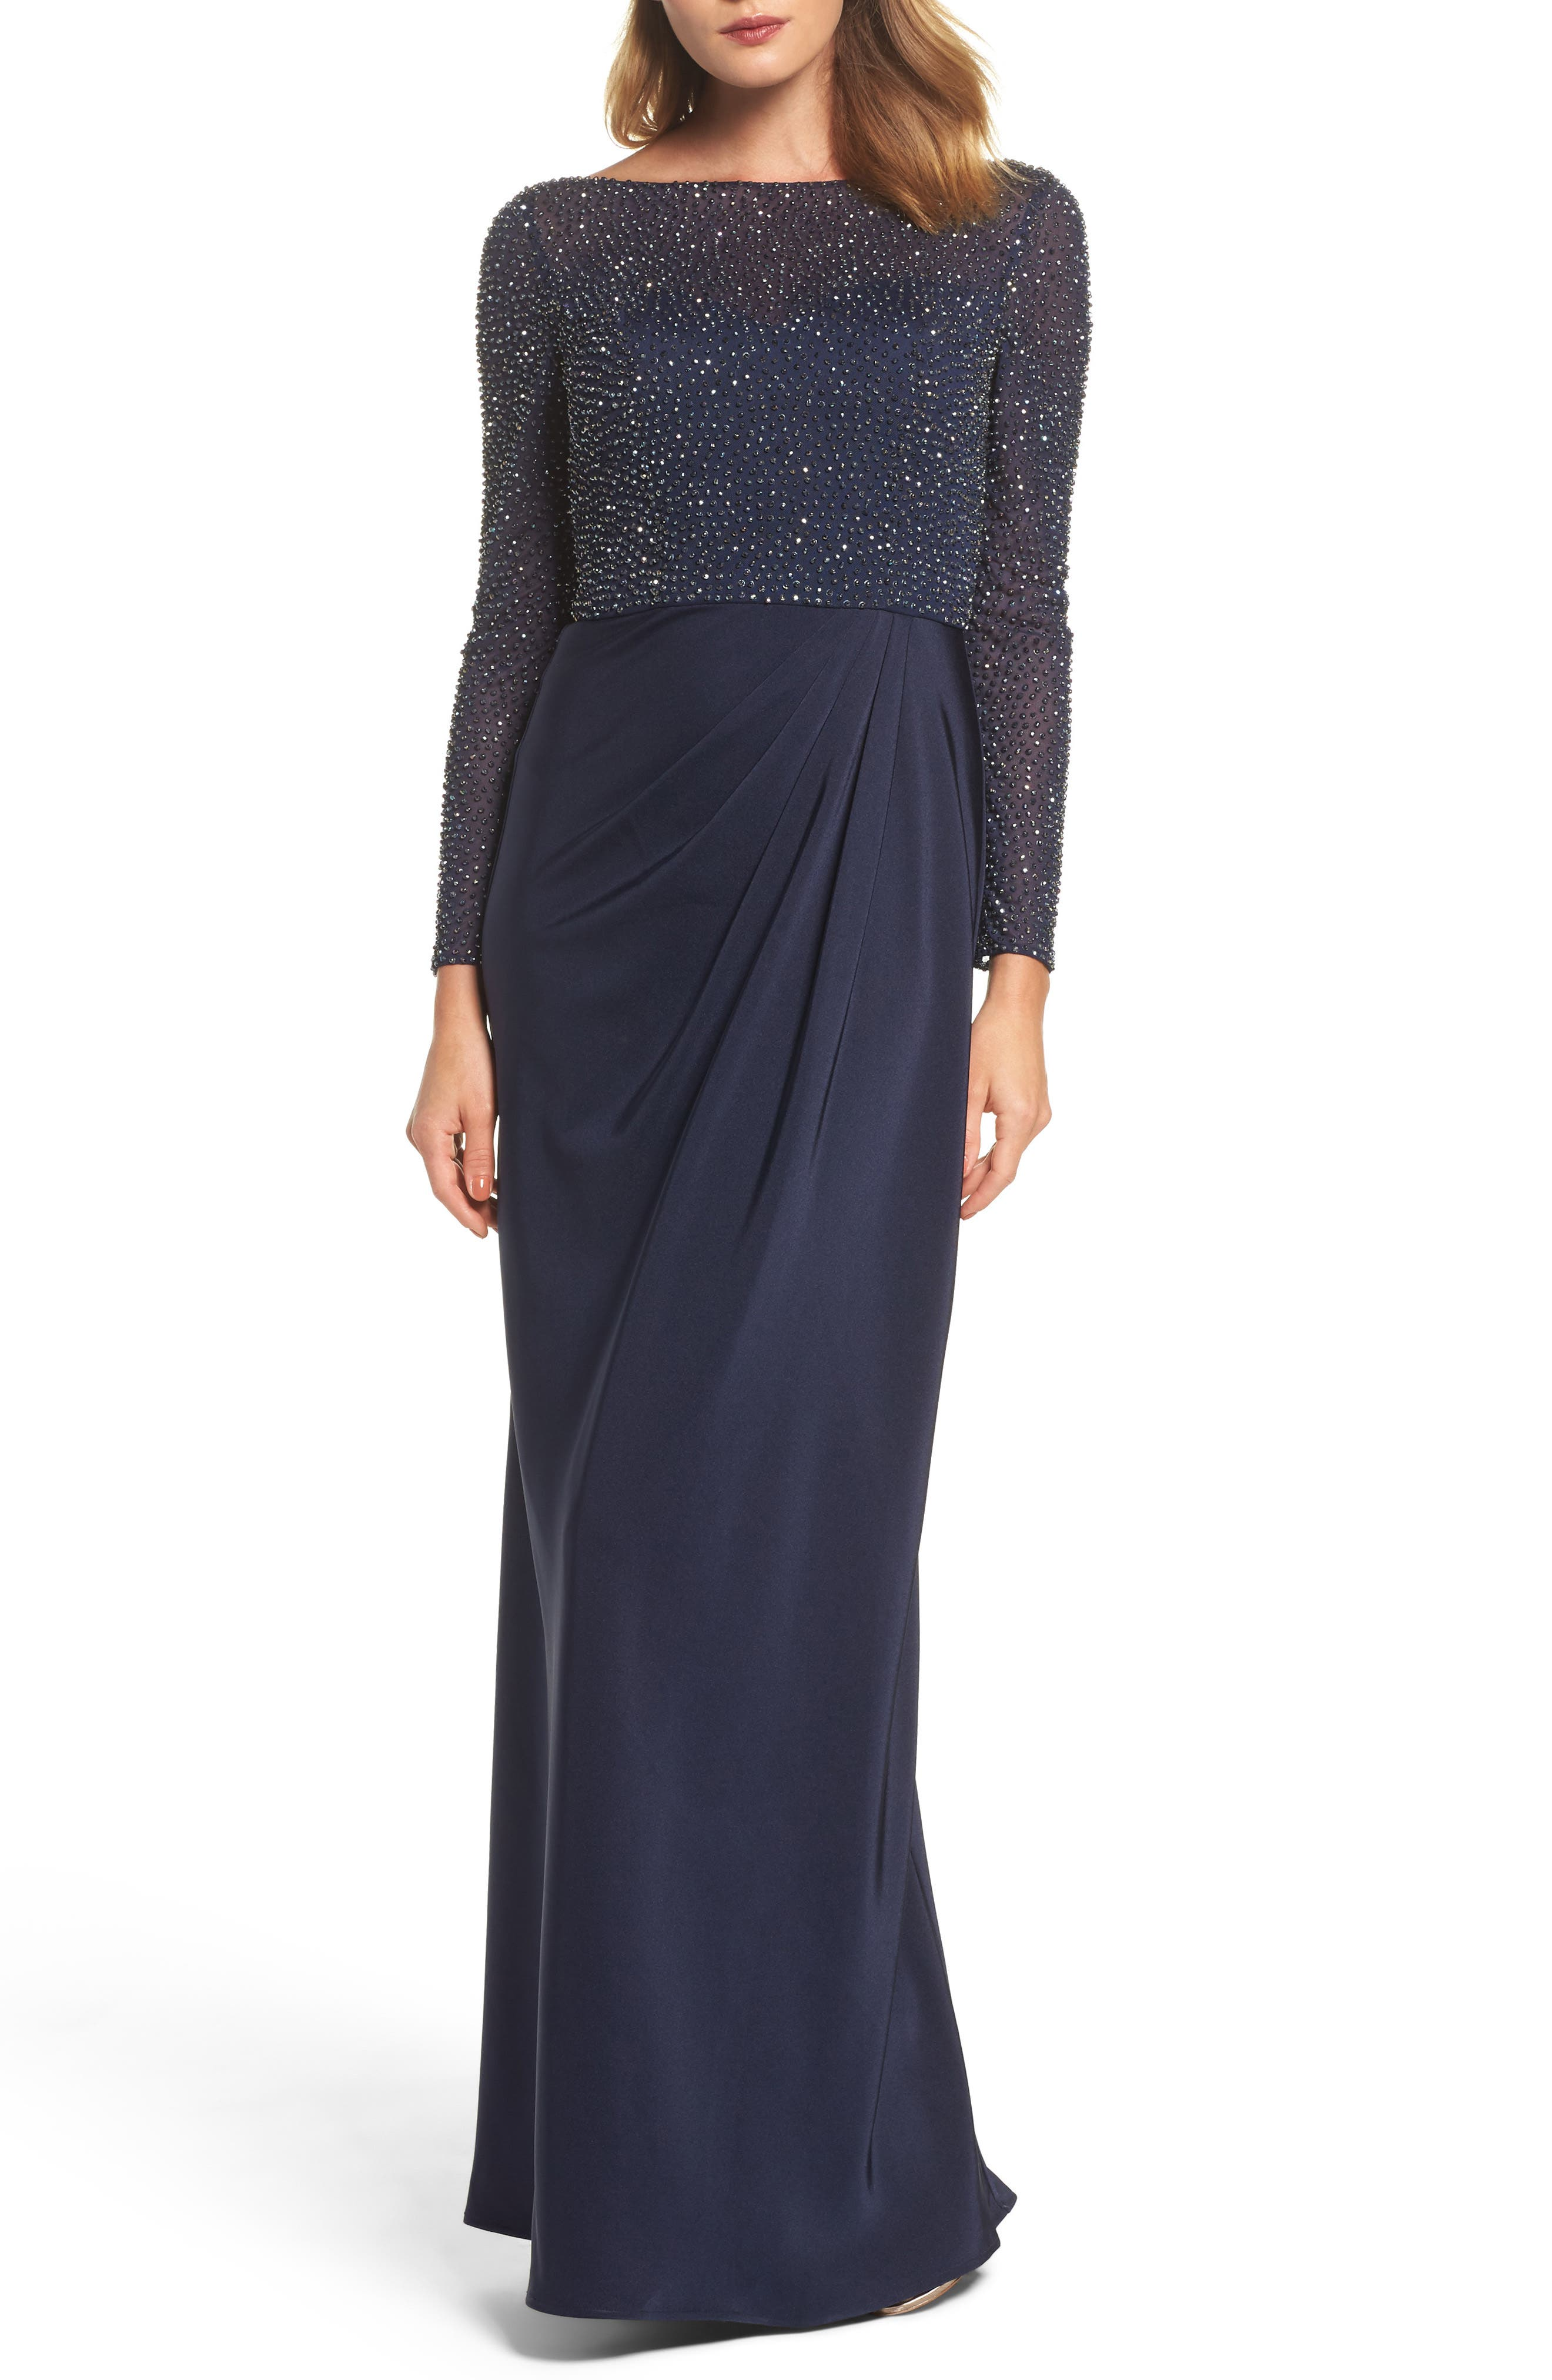 LA FEMME, Bead Embellished Gown, Main thumbnail 1, color, NAVY